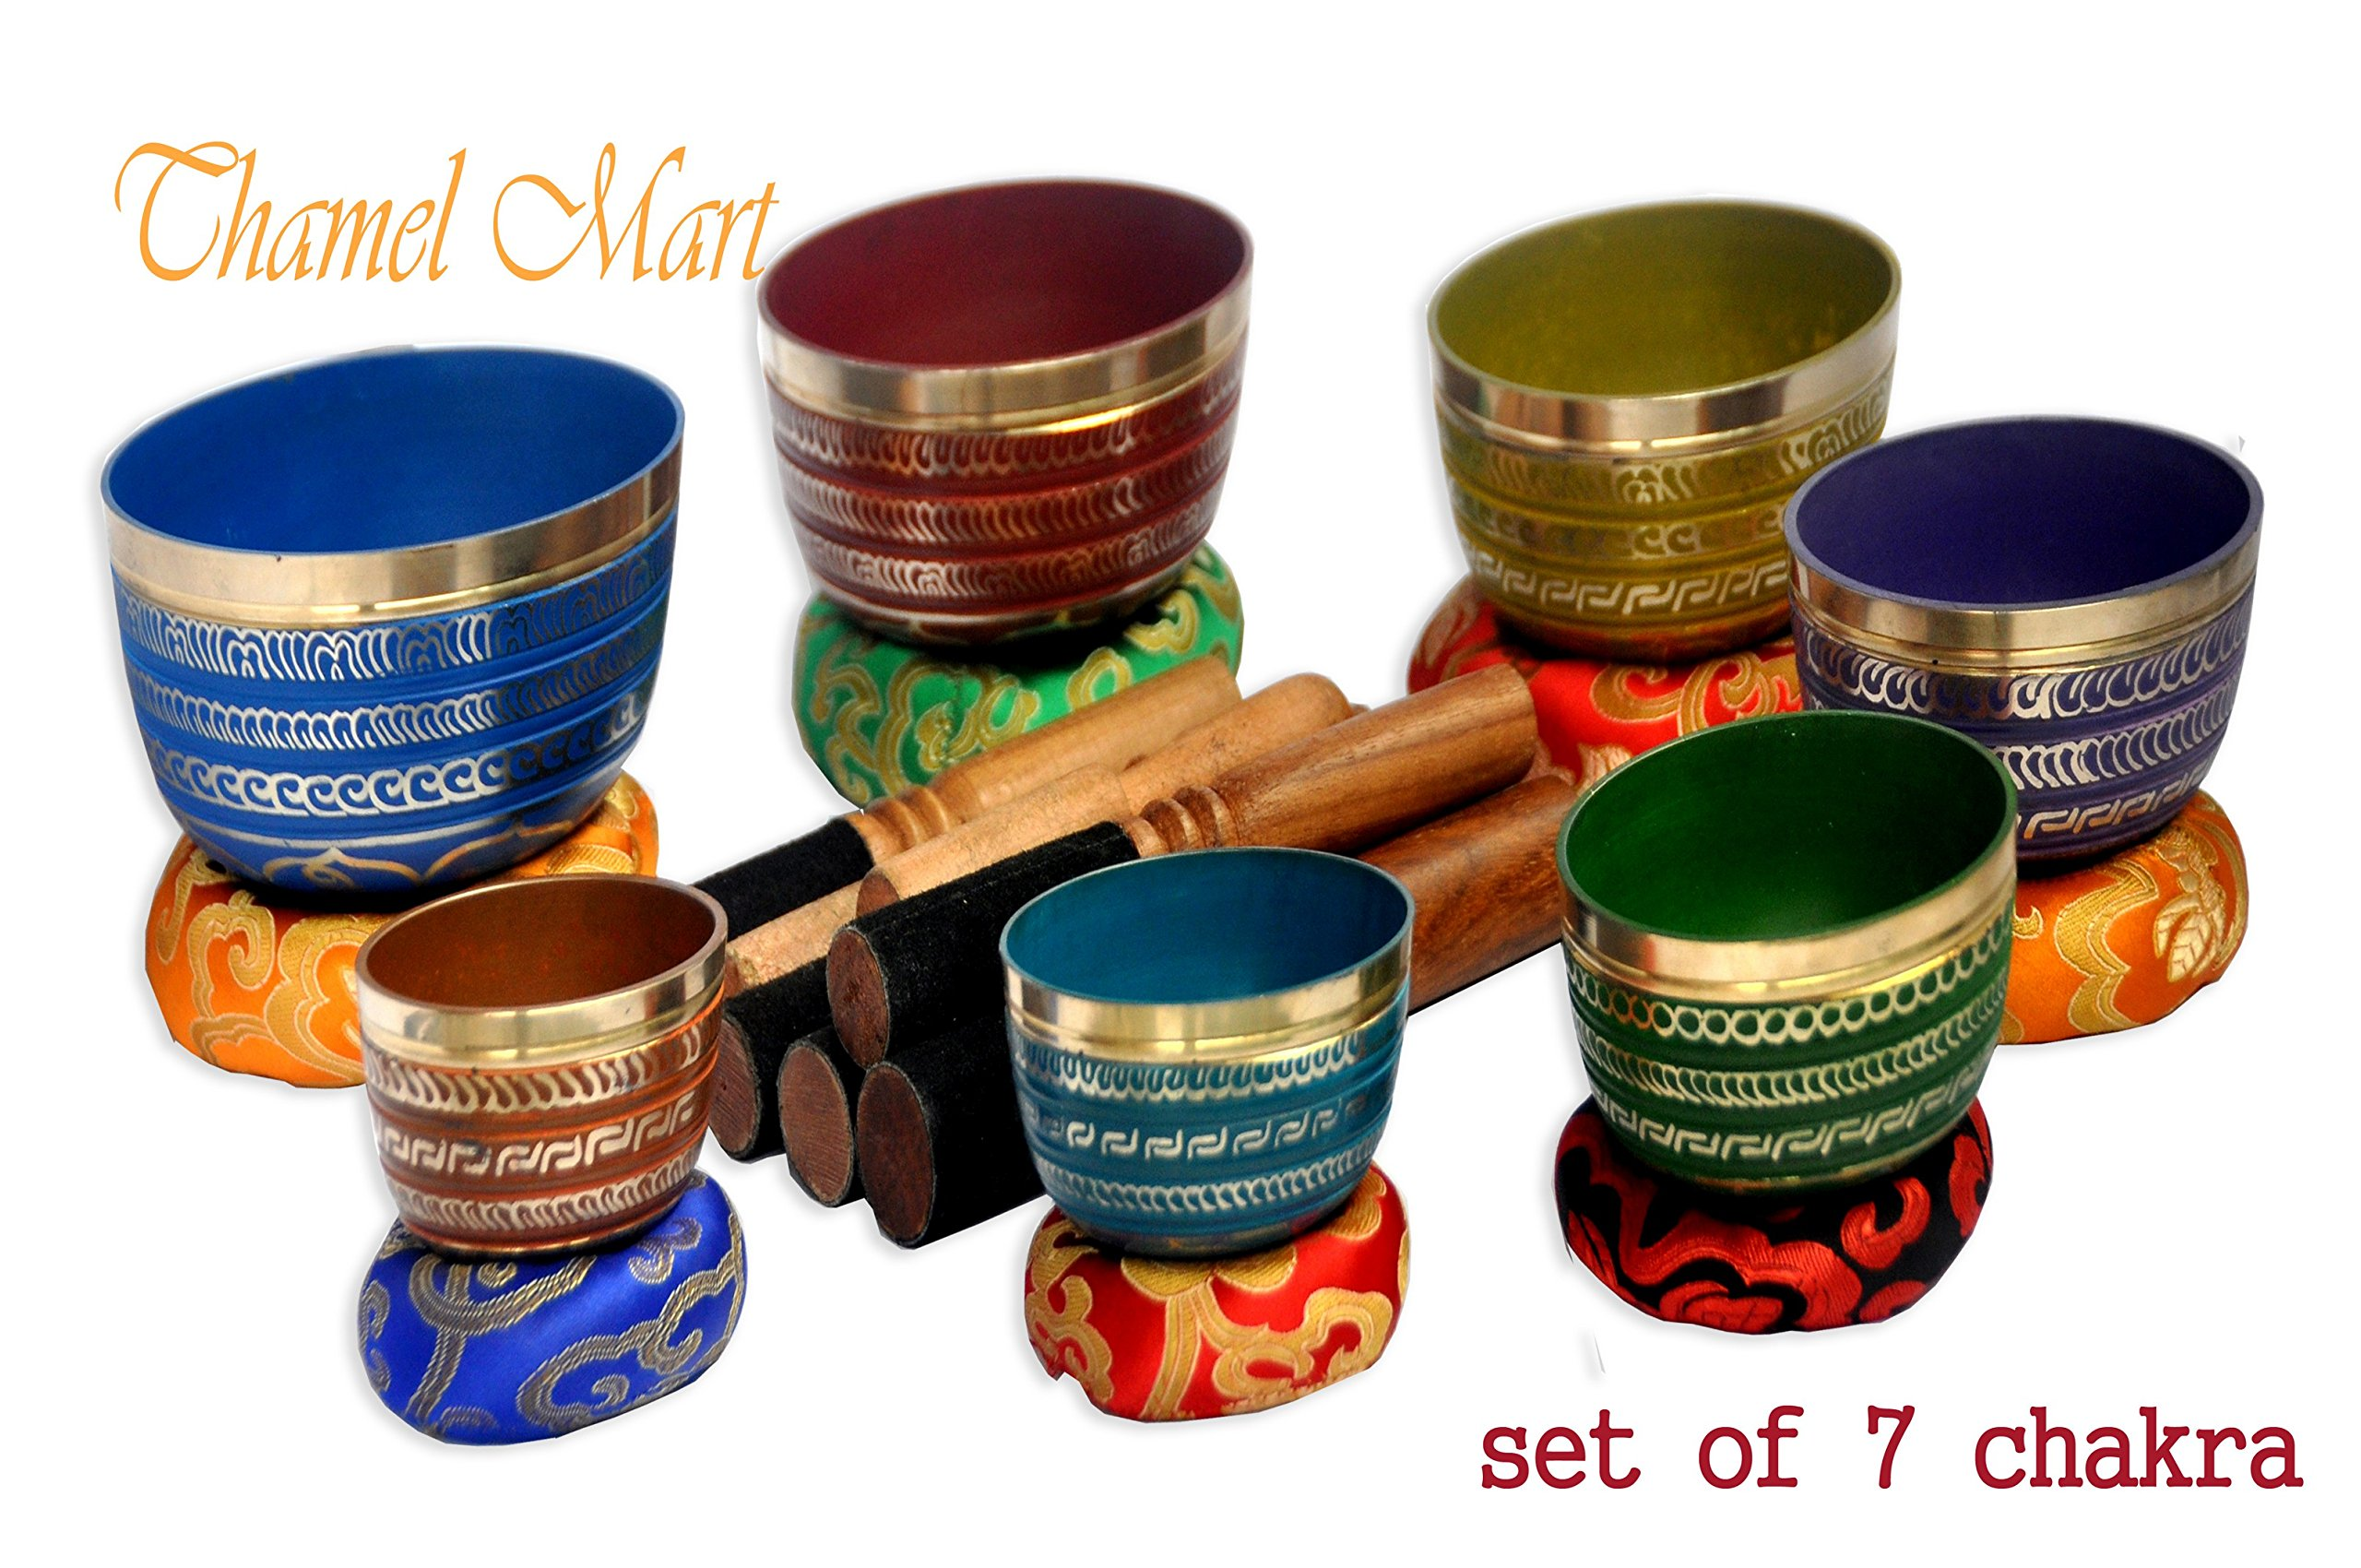 Chakra Healing Tibetan Singing Bowl Sets 7 Sets of Meditation Bowls From Nepal (seven colored) by TM THAMELMART FOR BEAUTIFUL MINDS